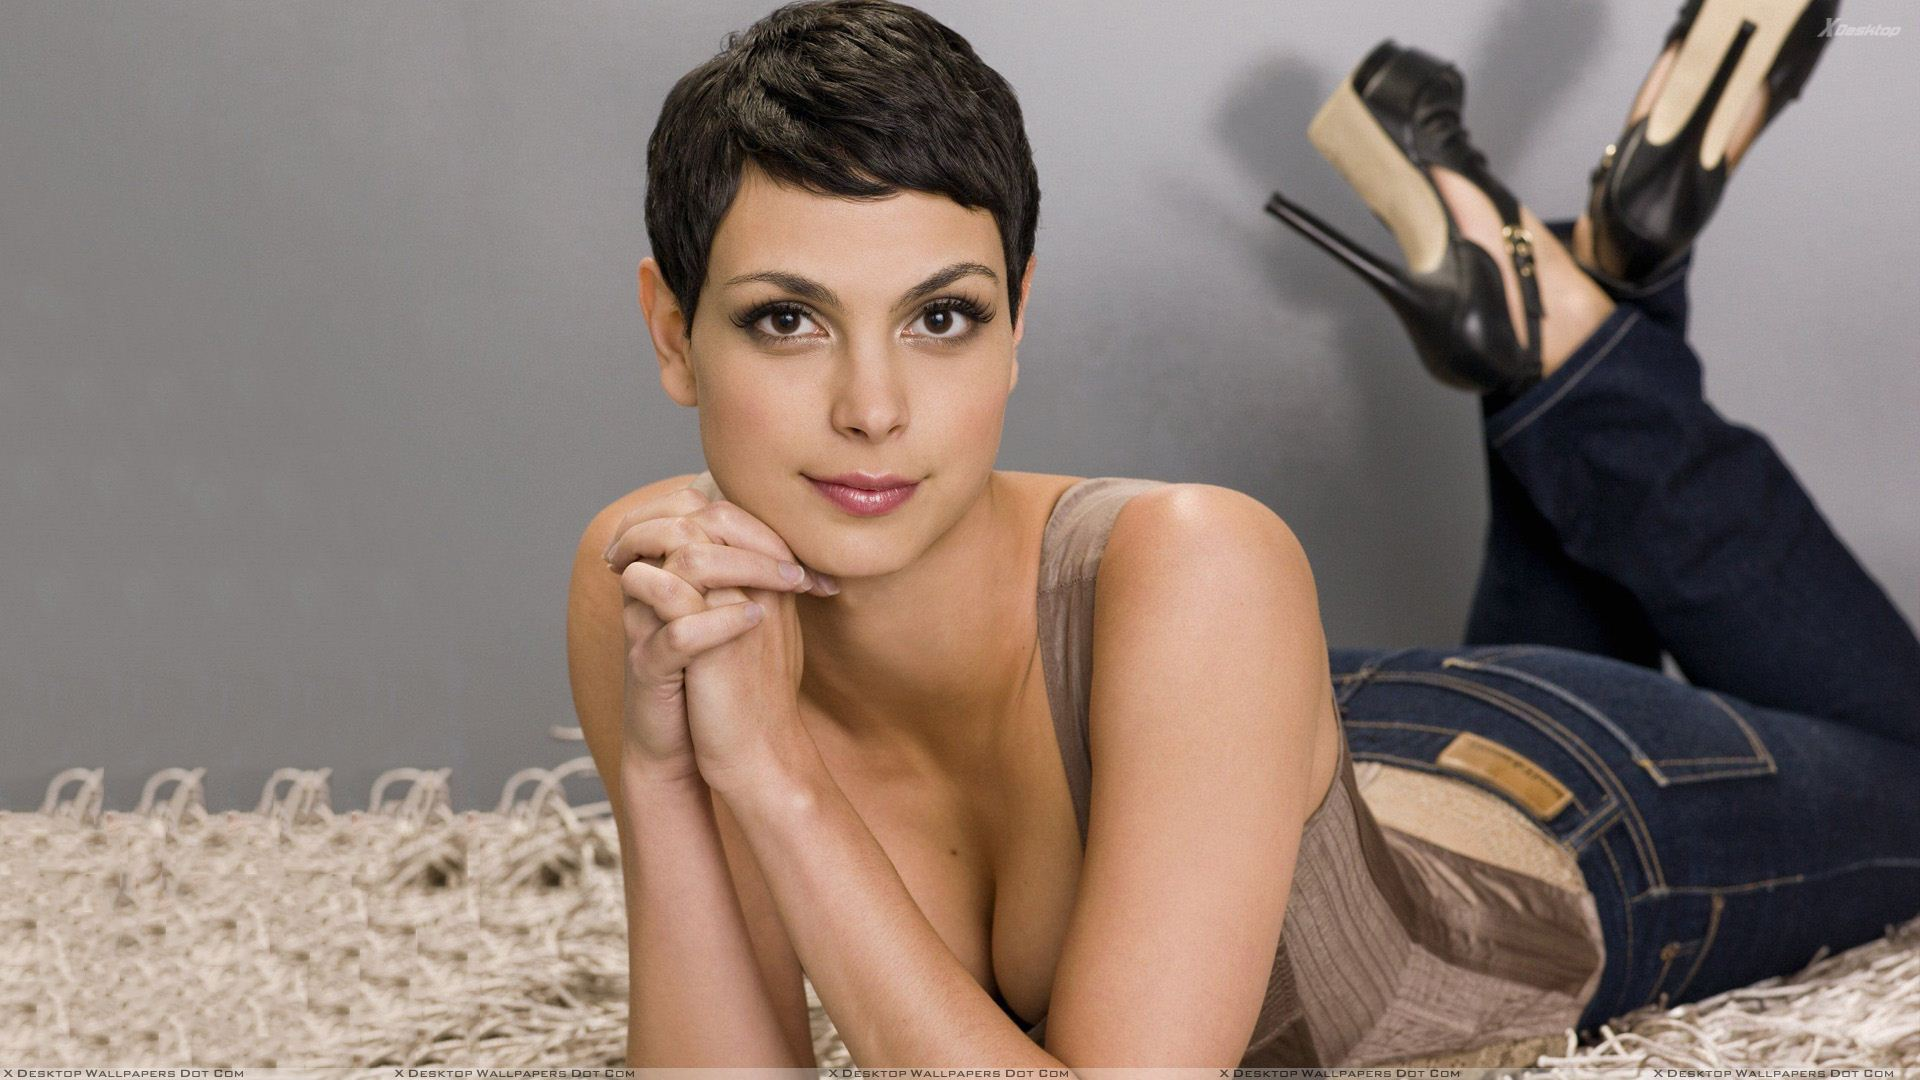 1920x1080 - Morena Baccarin Wallpapers 11